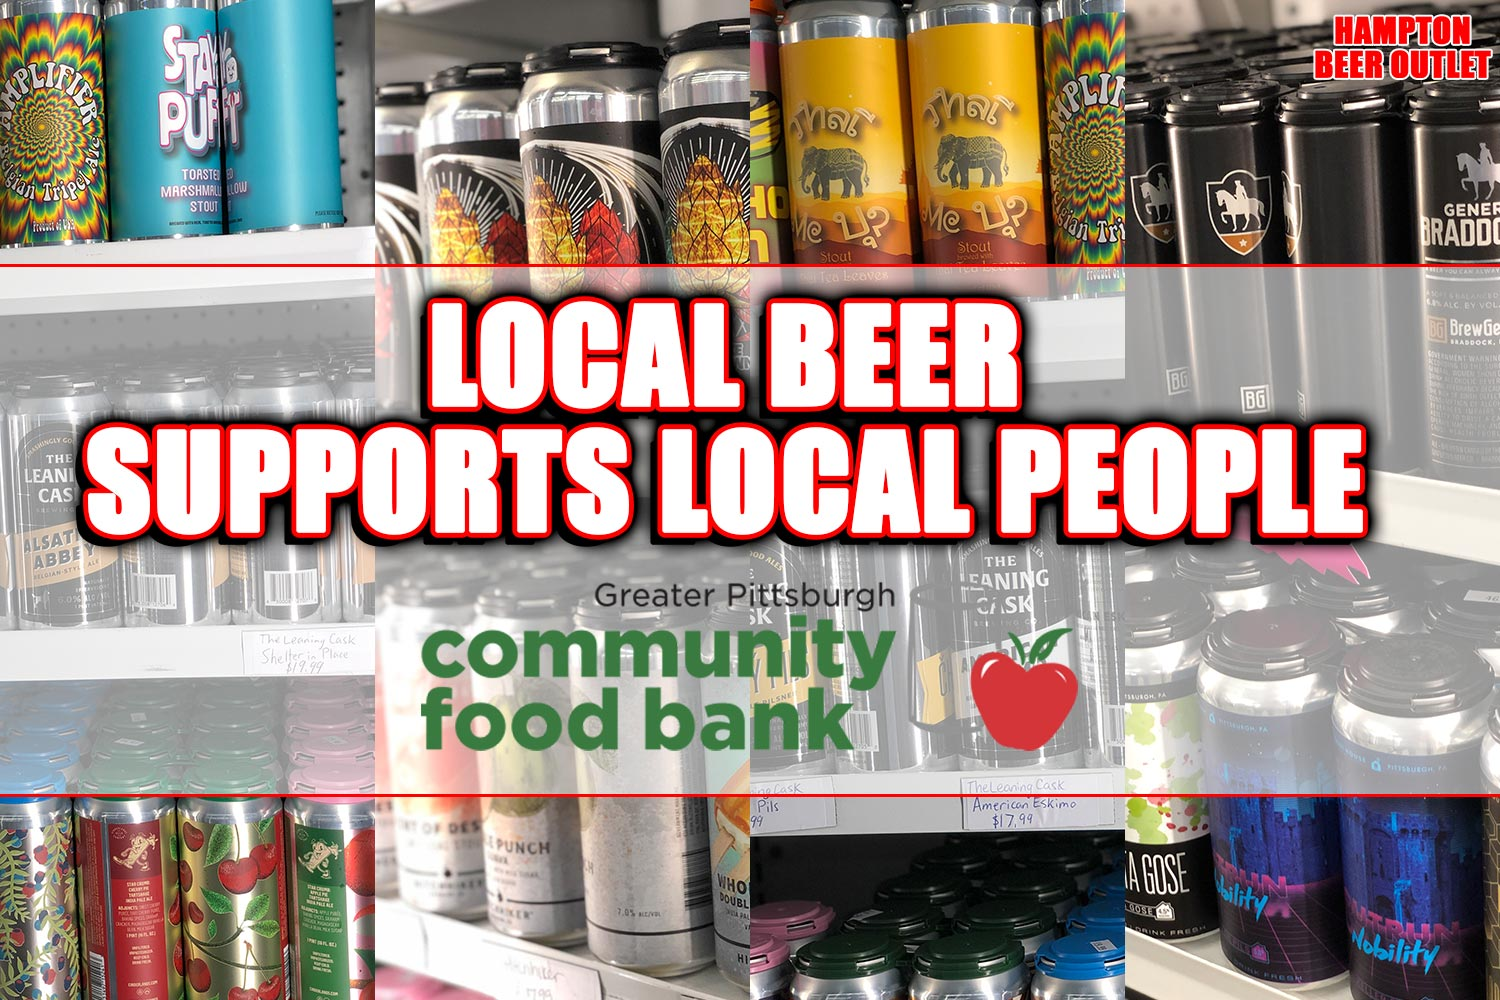 hampton-beer-outlet-greater-pittsburgh-food-bank